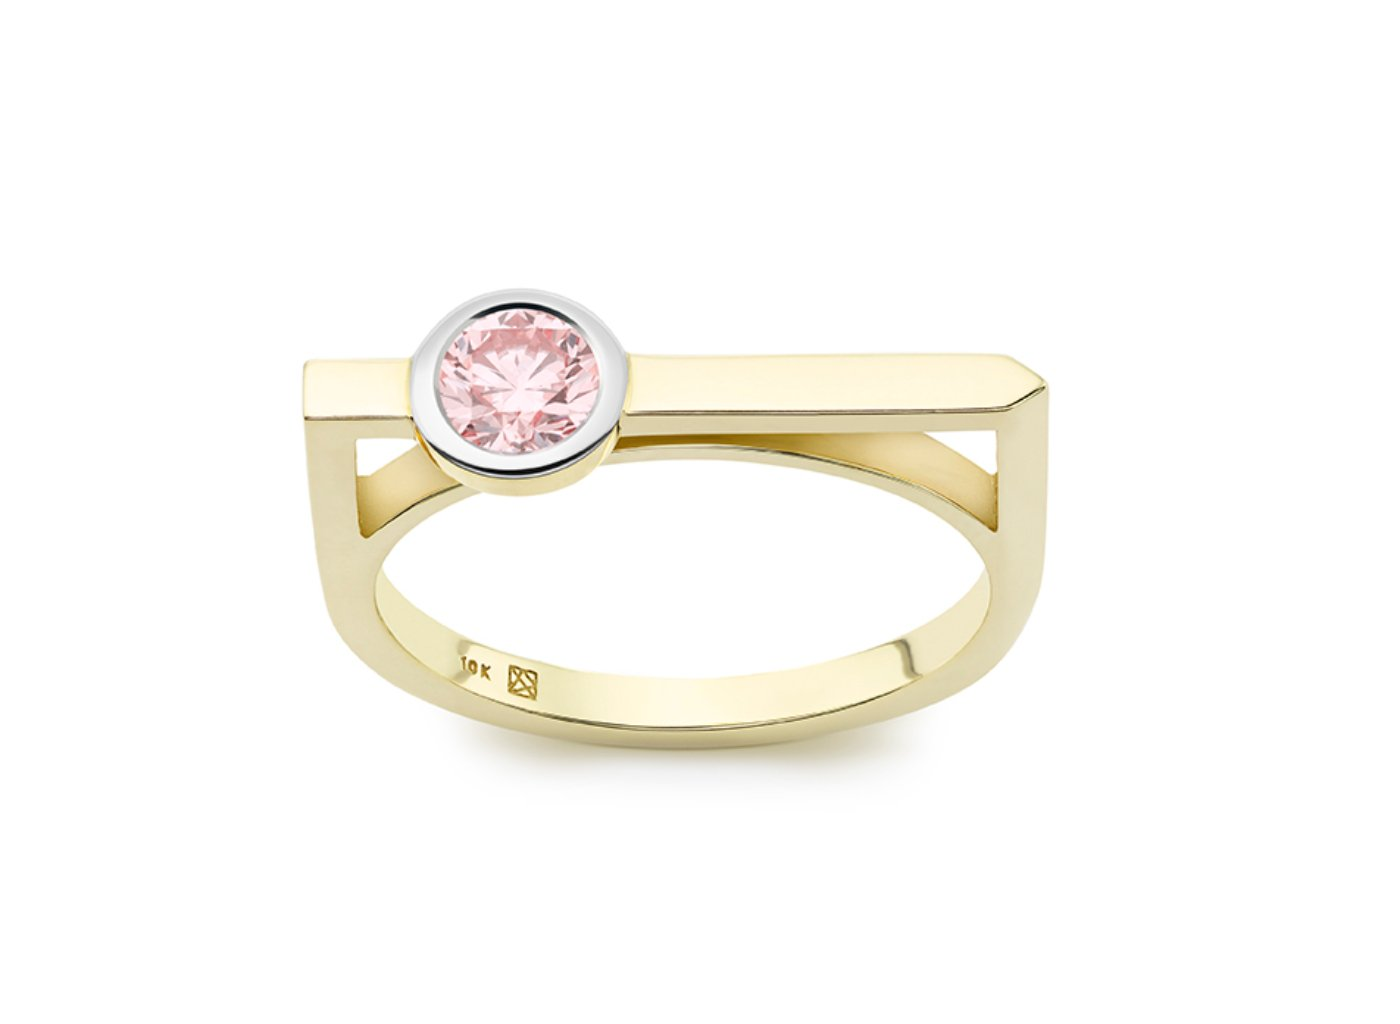 Front view of Solitaire linear 3/8 carat ring with pink diamond